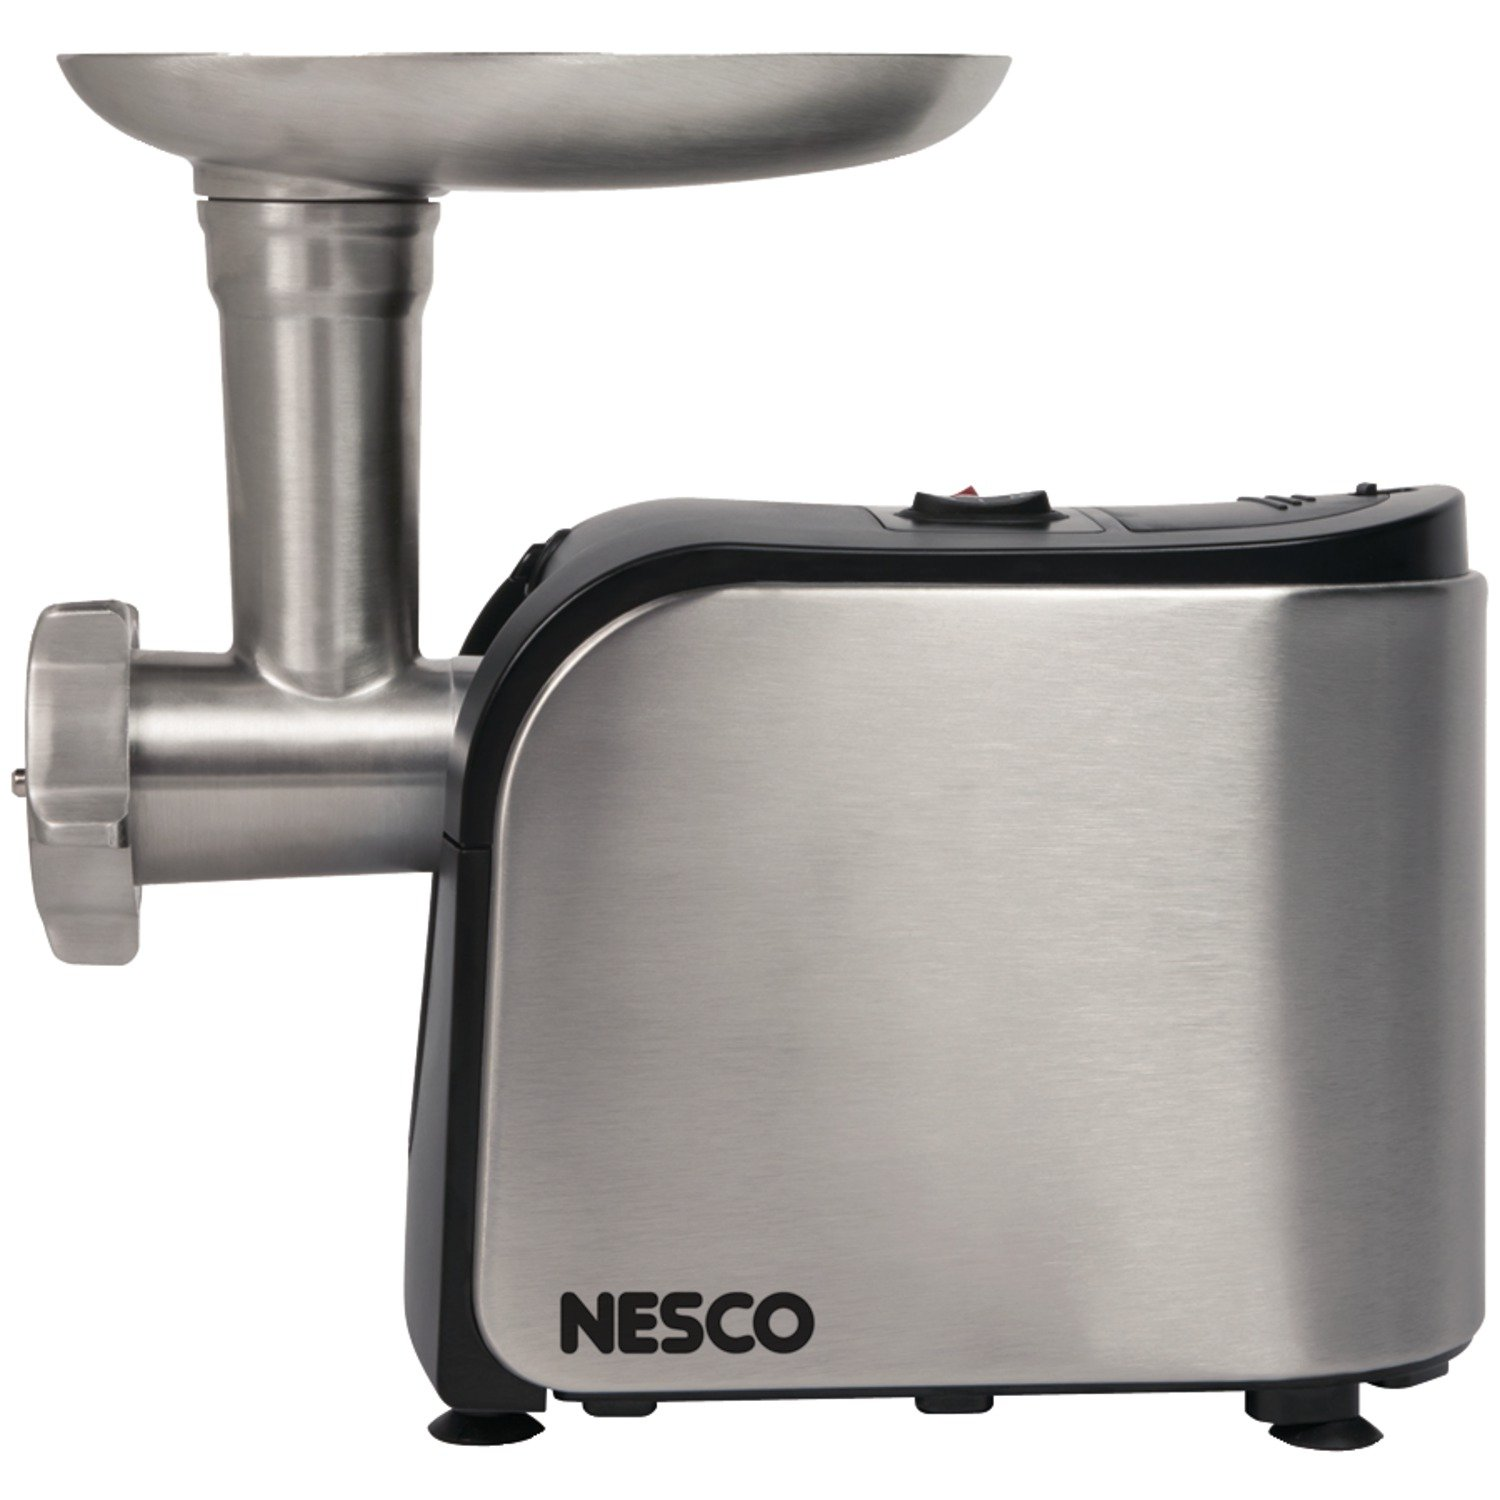 Nesco FG-180 Food Grinder with Stainless Steel Body, 500-Watt